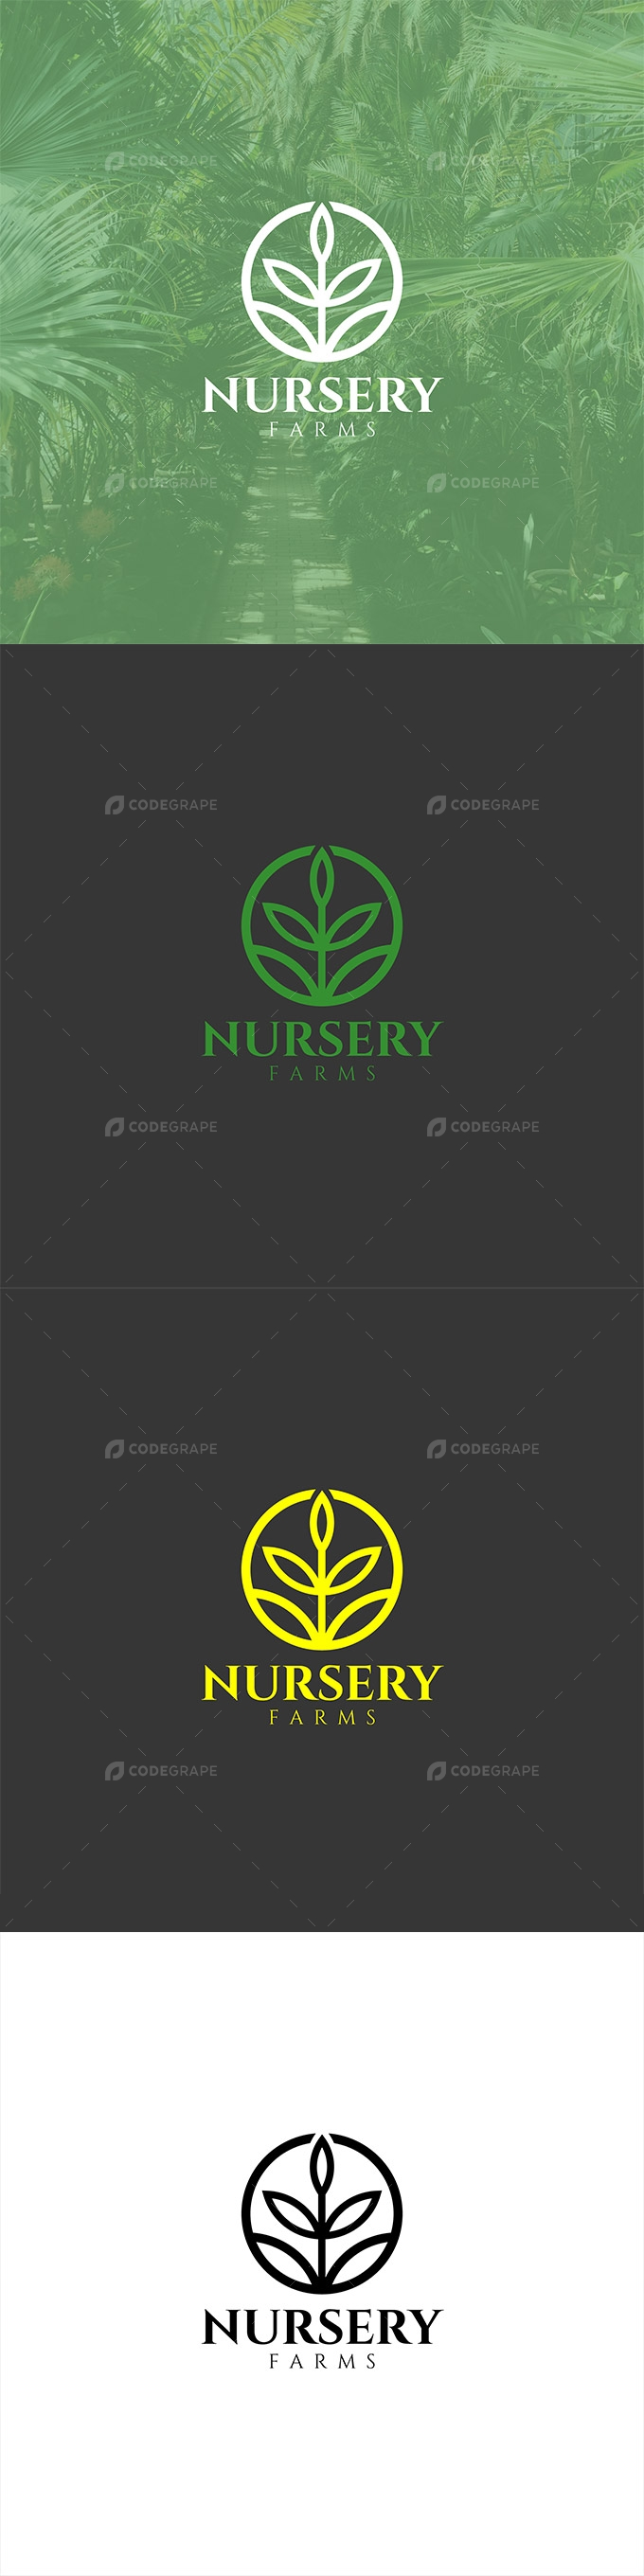 Nursery Farms Logo Design